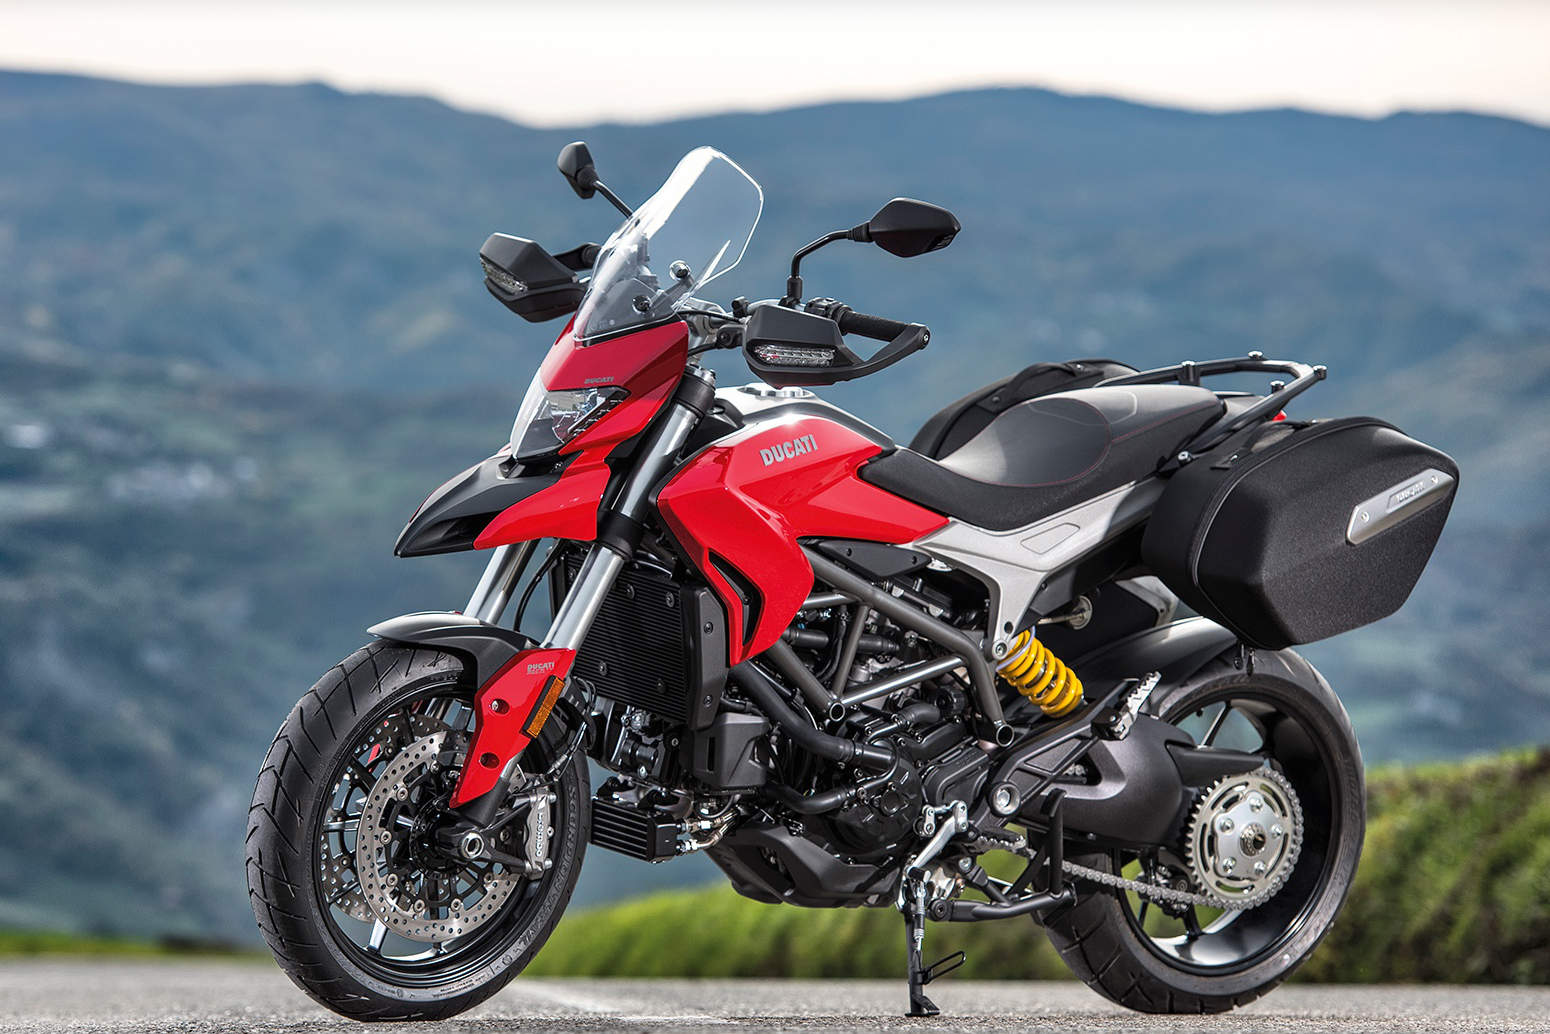 ducati hypermotard family gets larger more powerful engine for 2016 with video. Black Bedroom Furniture Sets. Home Design Ideas